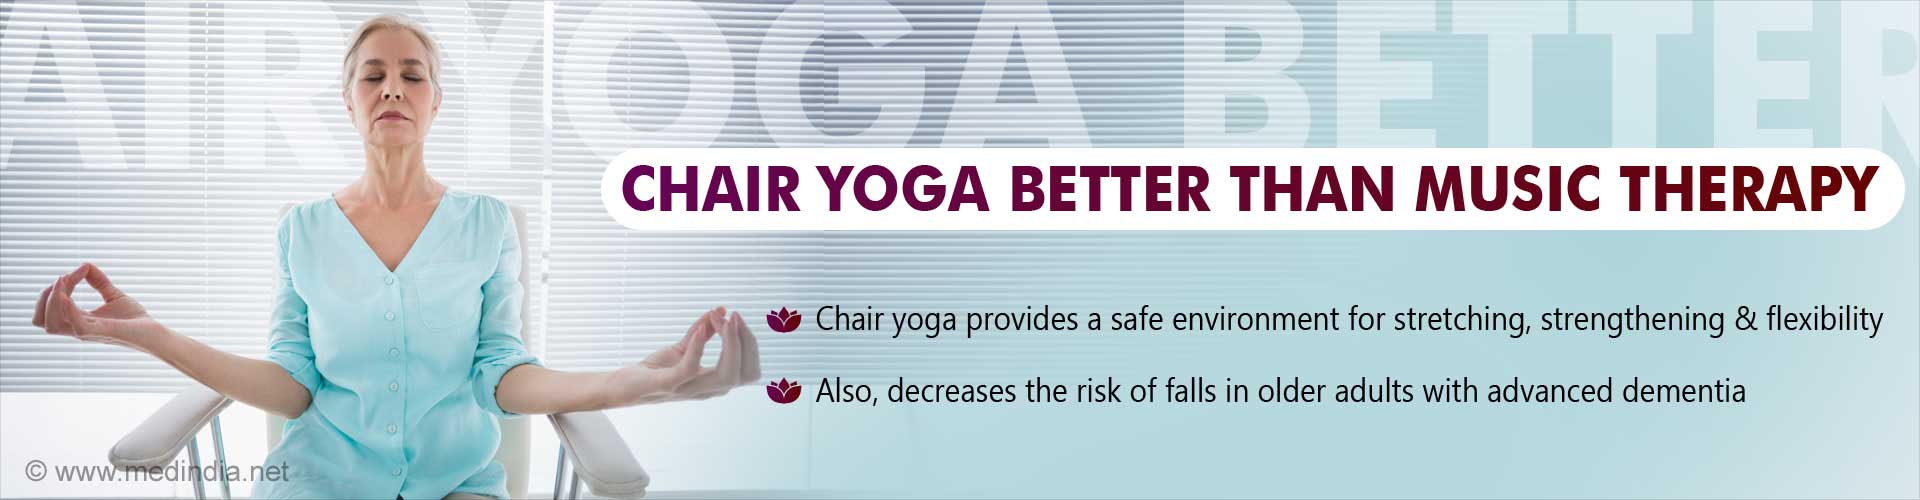 Chair Yoga Reduces Risk of Falls in Older Adults